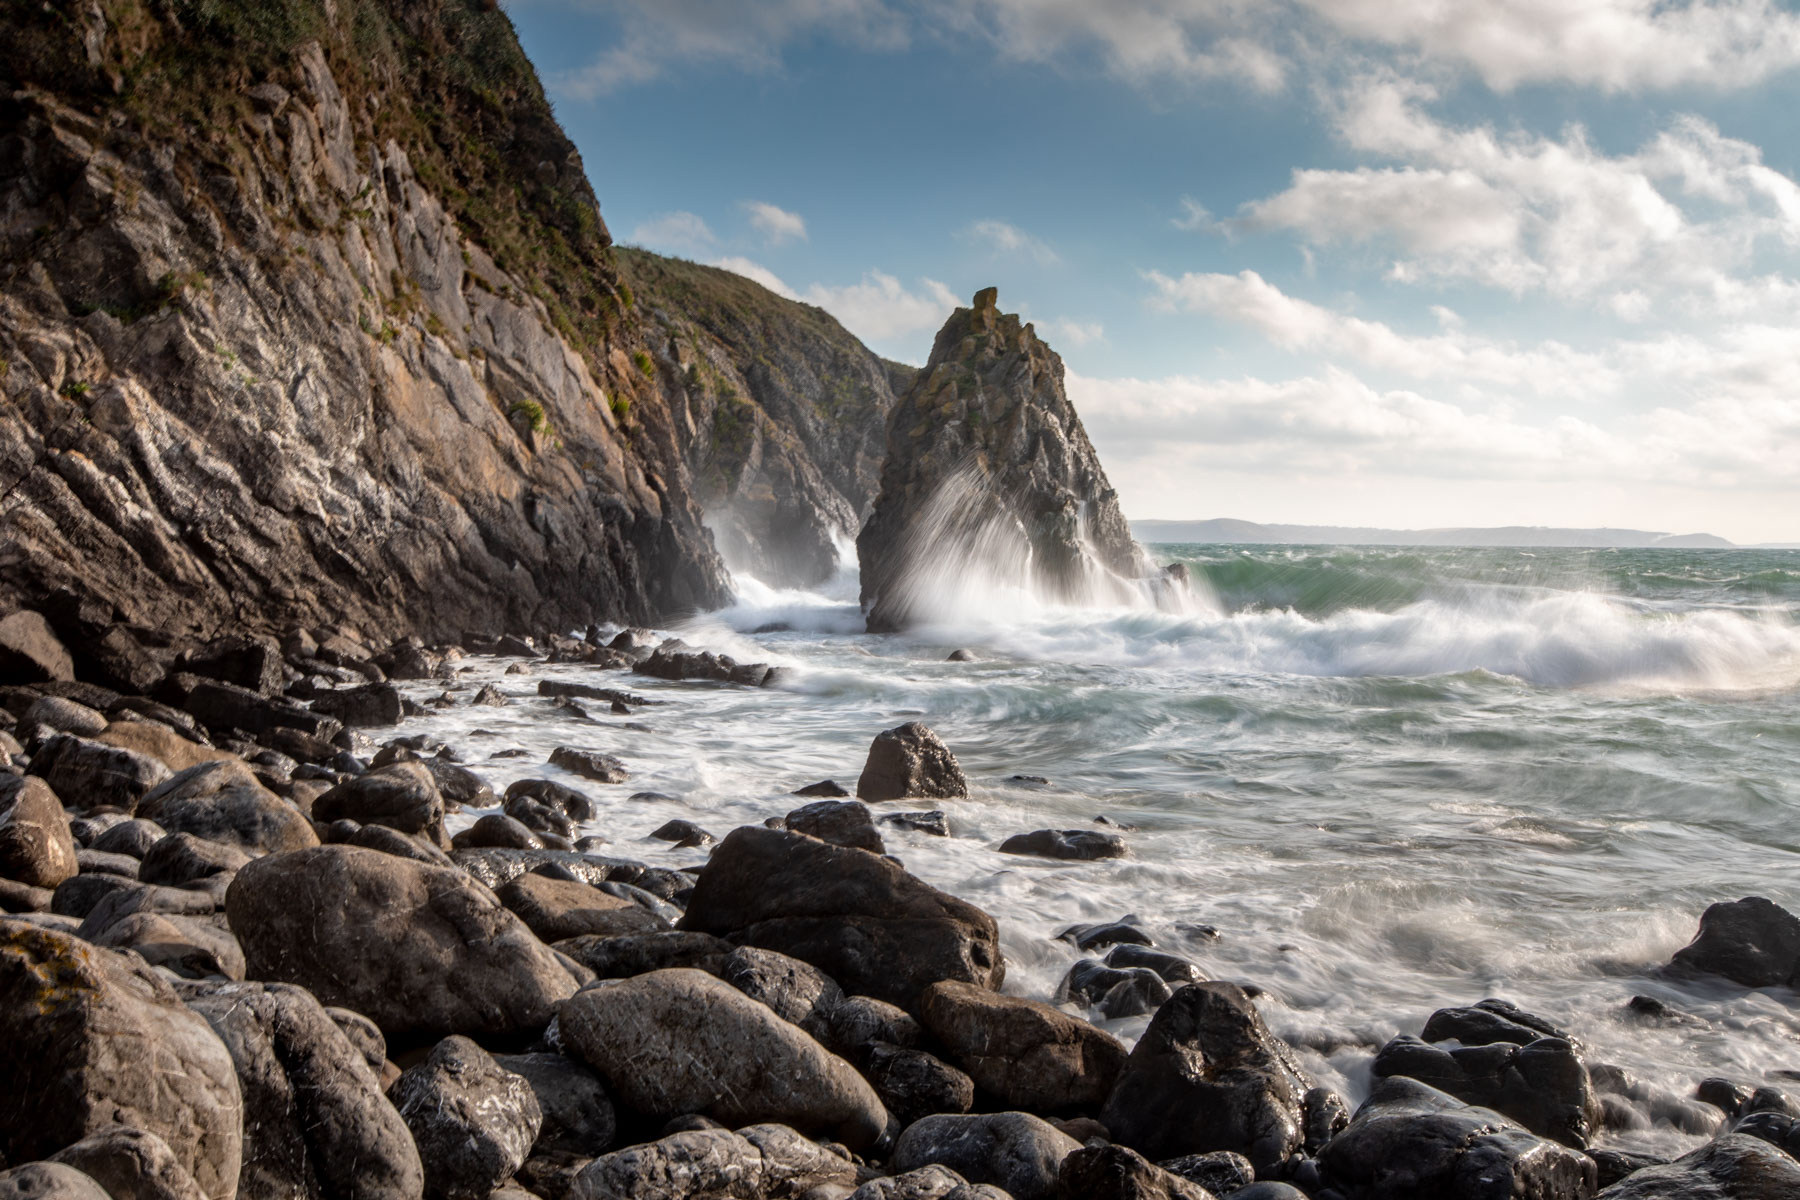 Sea Stack on the beach at Stackpole, Wales, United Kingdom